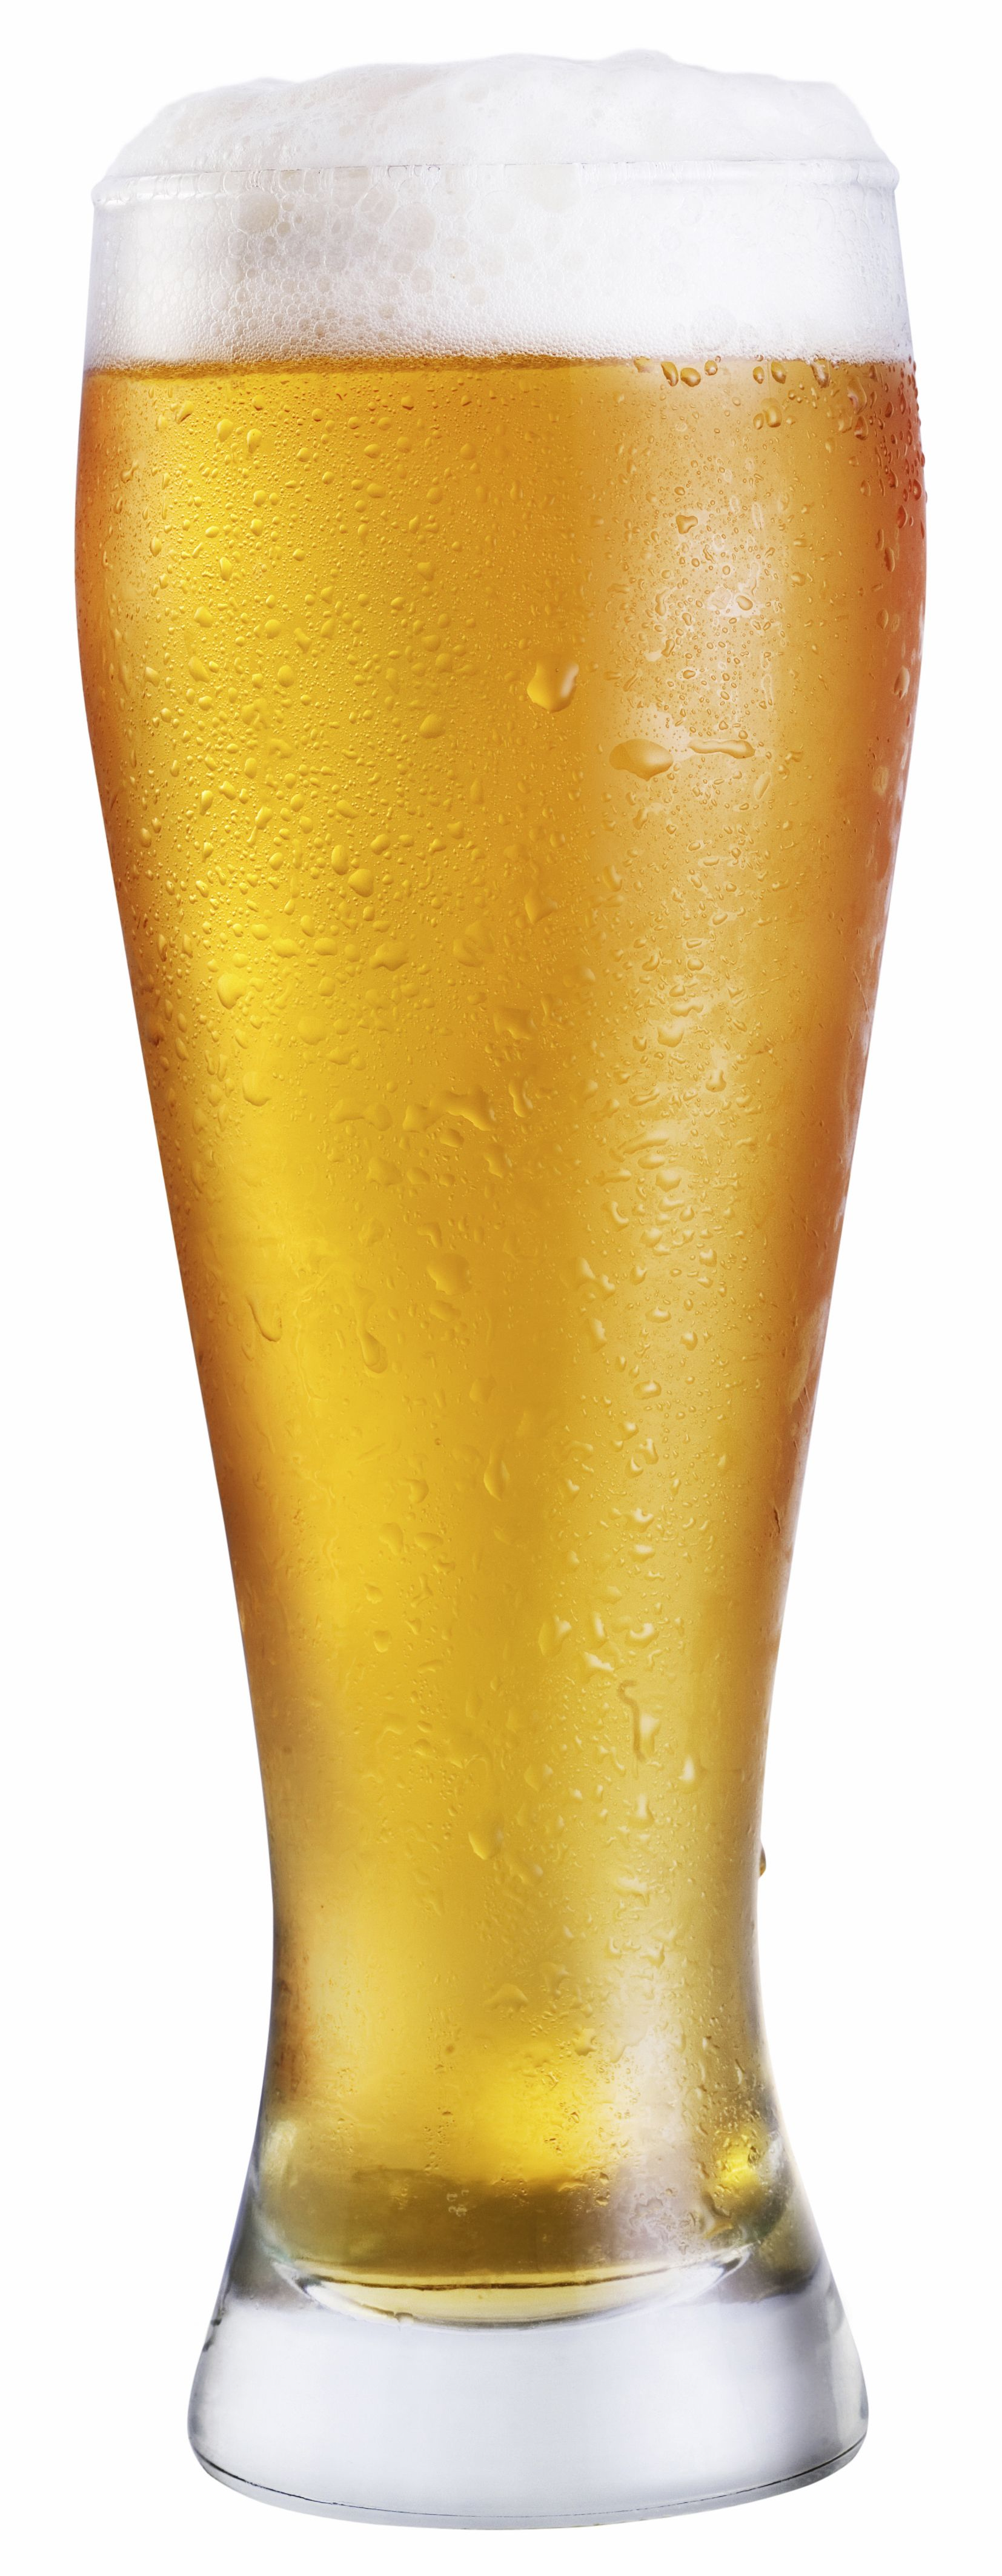 Beer on tap at all locations. Beer, Wheat beer